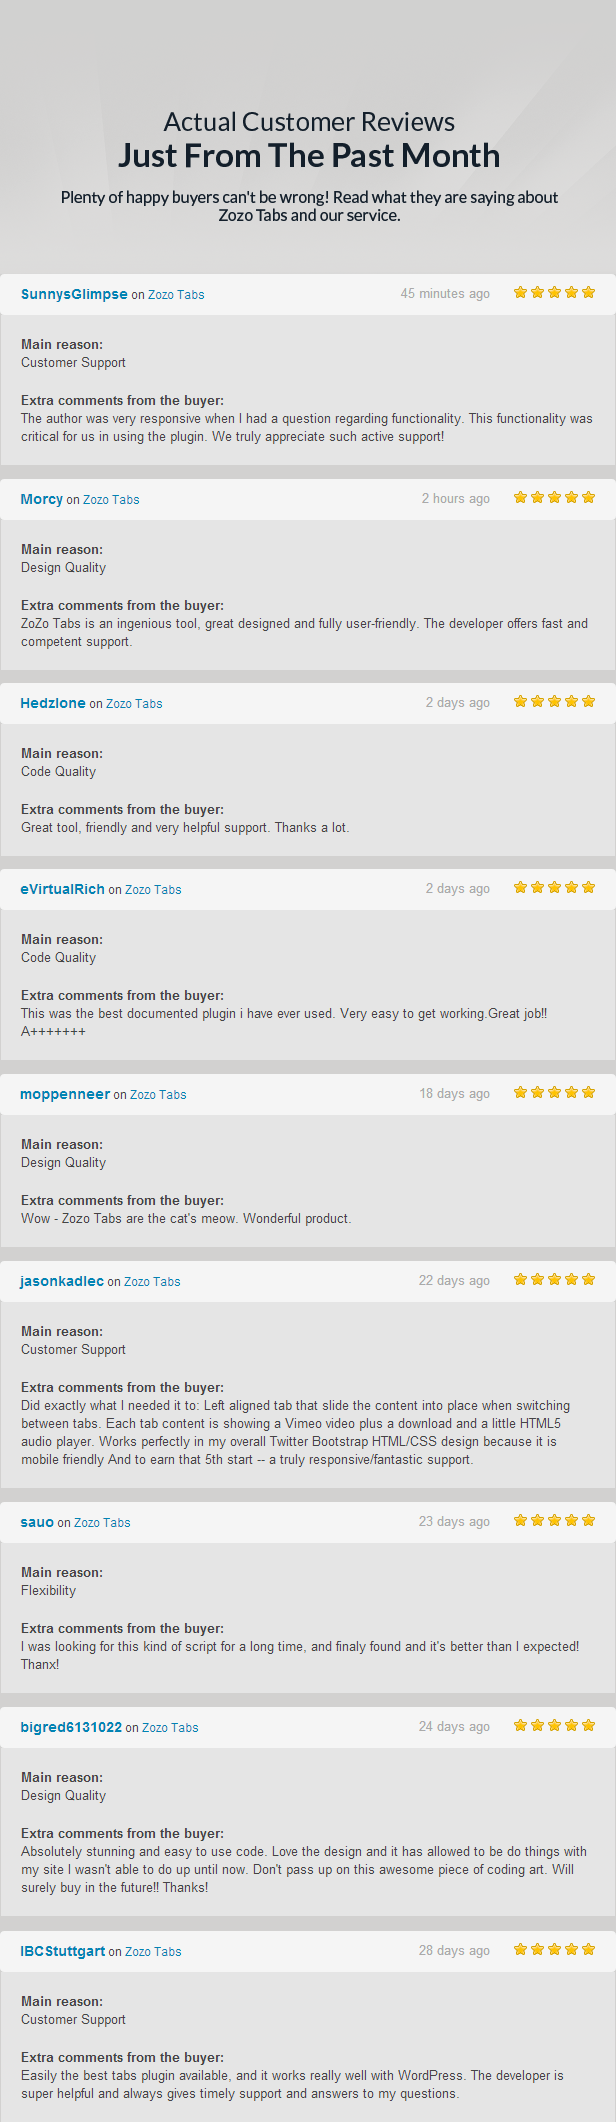 Actual Customer Reviews Just From The Past Month Plenty happy buyers cant wrong! Read what they are saying about Zozo Tabs and our service. SunnysGlimpse Zozo Tabs minutes ago Main Customer Support Extra comments from the The author was very responsive when had question regarding functionality. This functionality was critical for using the plugin truly appreciate such active support! Morcy Zozo Tabs hours ago Main Design Quality Extra comments from the ZoZo Tabs ingenious tool, great designed and fully The developer offers fast and competent support Hedzlone Zozo Tabs days ago Main Code Quality Extra comments from the Great tool, friendly and very helpful support Thanks lot eVirtualRich Zozo Tabs days ago Main Code Quality Extra comments